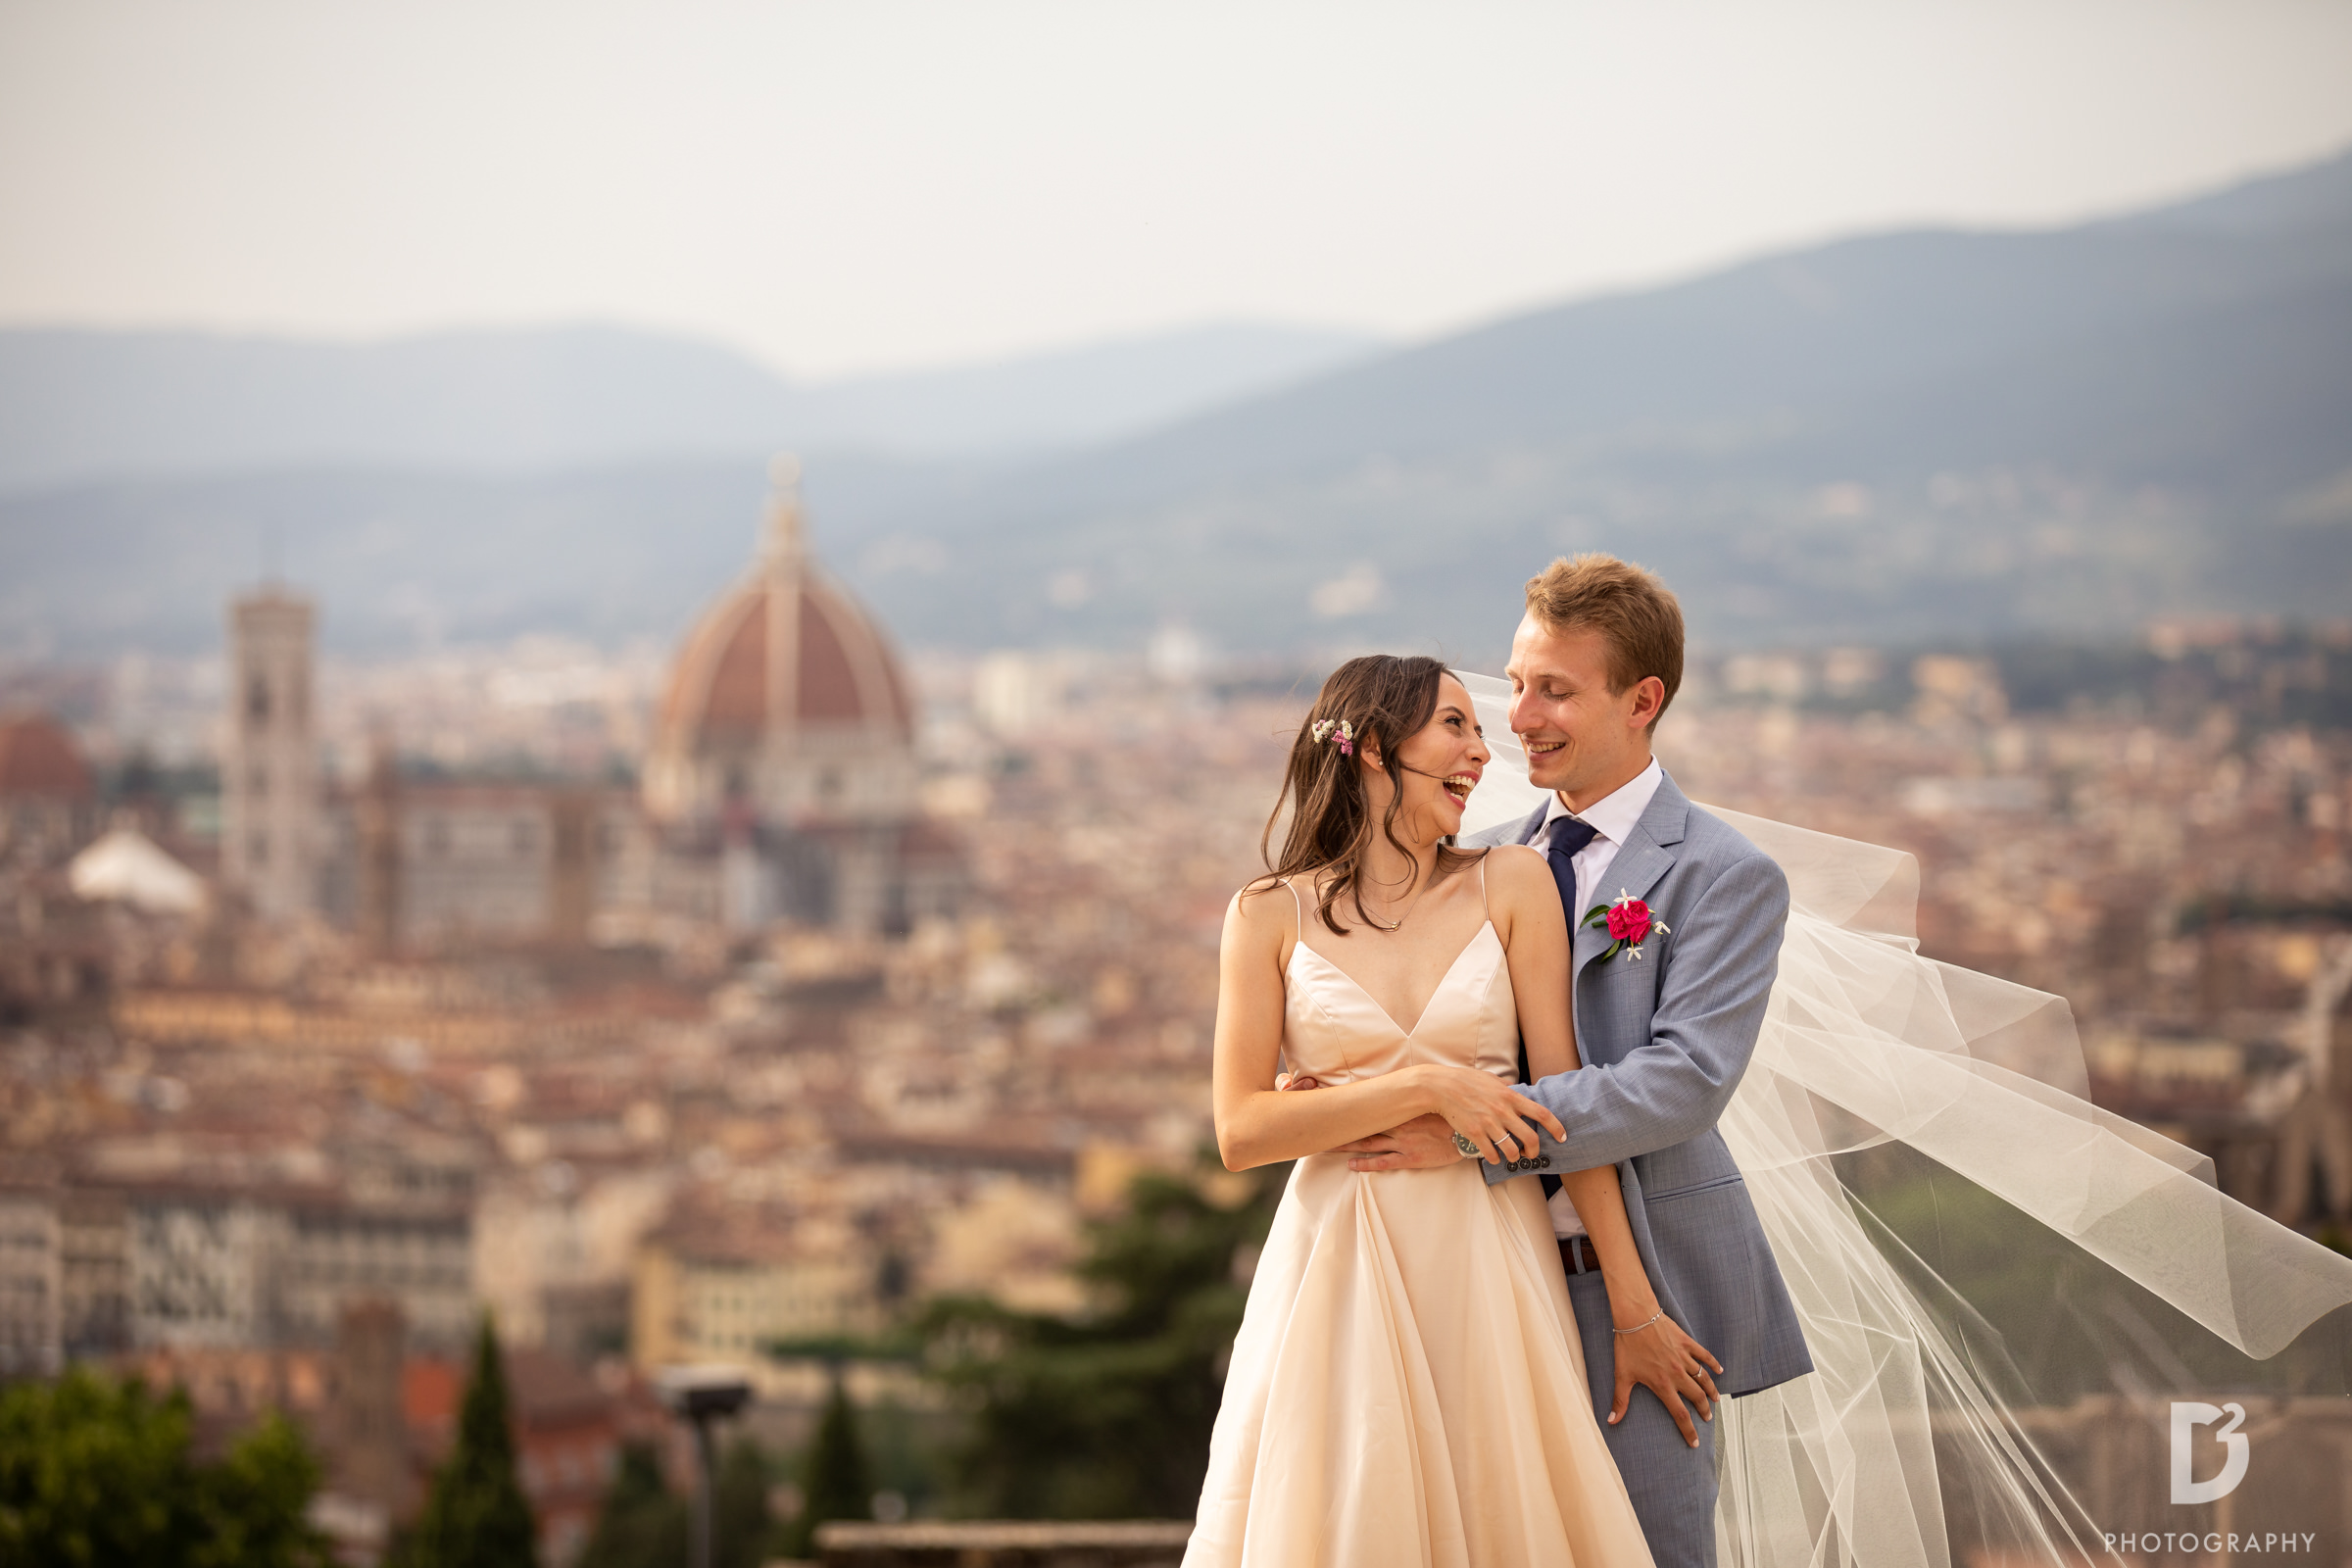 Elopement overlooking the Duomo in Florence - photo by D2 Photography